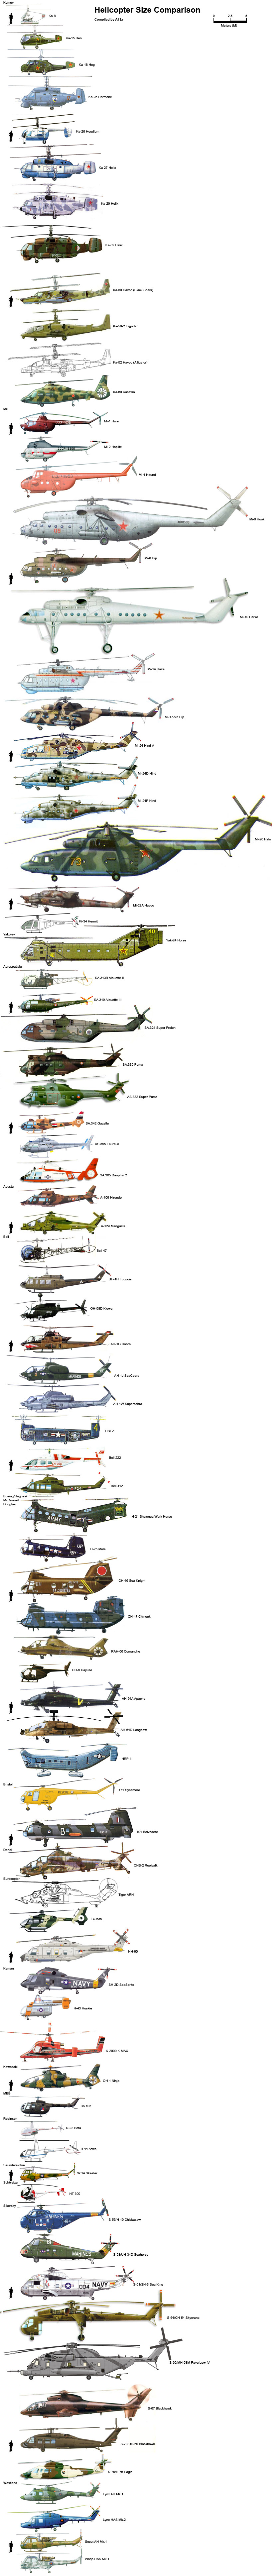 comparaison-taille-helicoptere